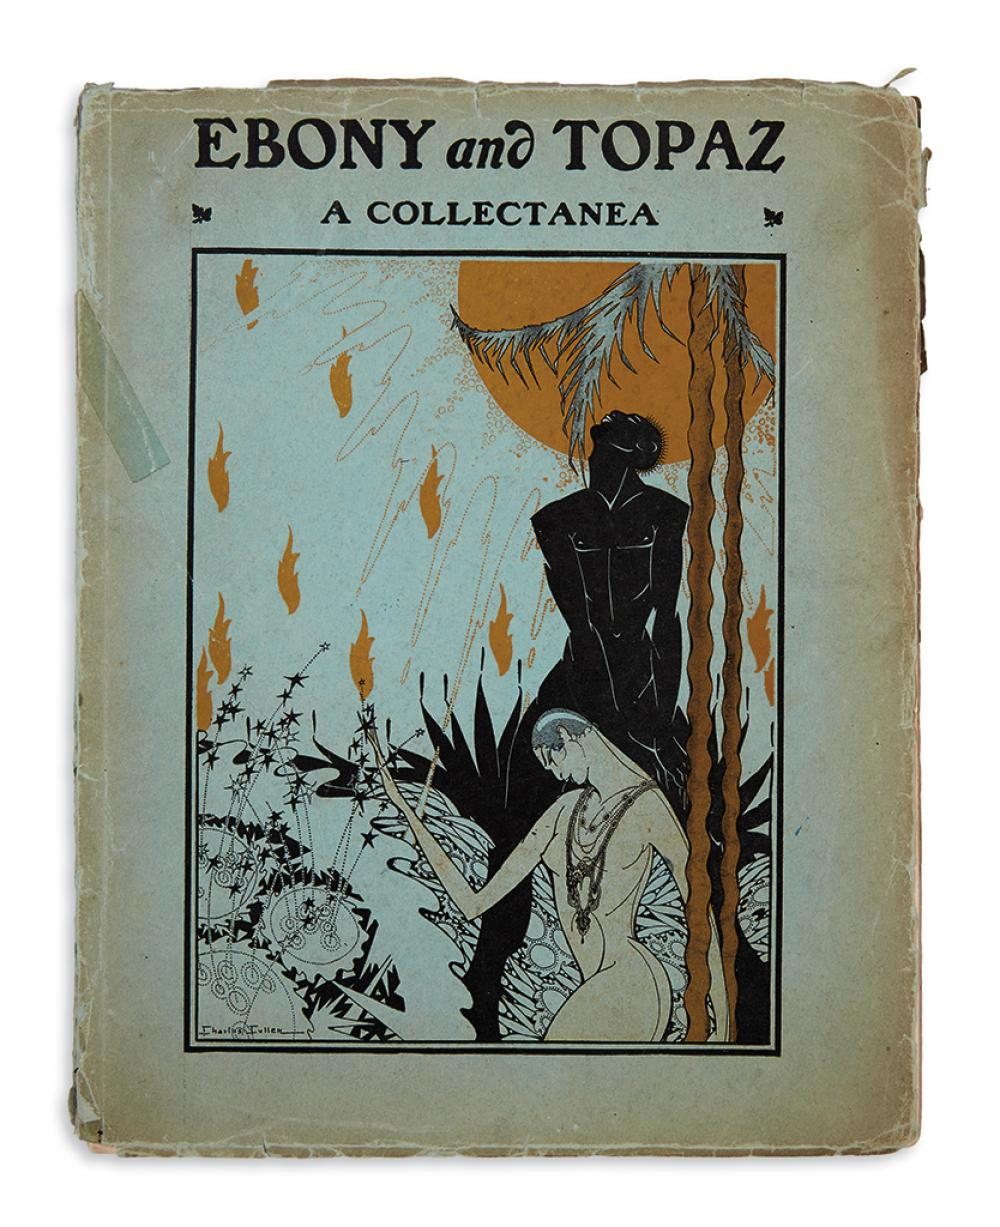 (LITERATURE.) Johnson, Charles S.; editor. Ebony and Topaz, a Collectanea.